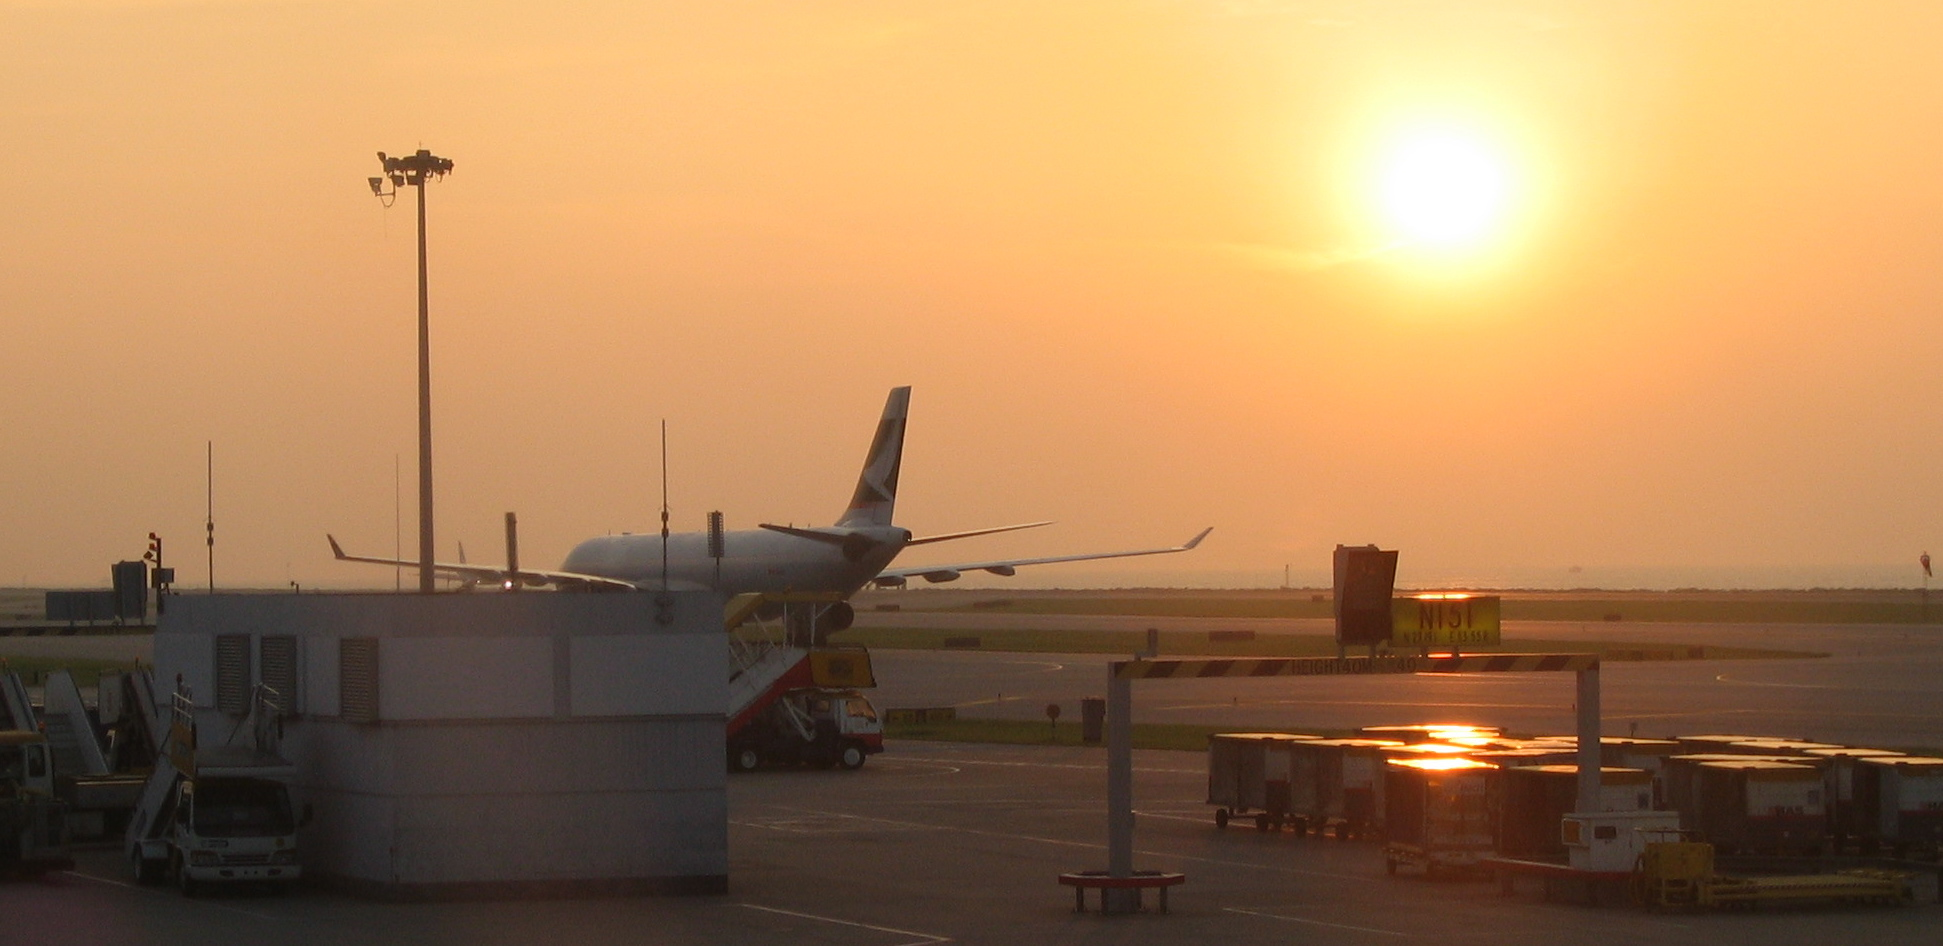 Sunset at HKG